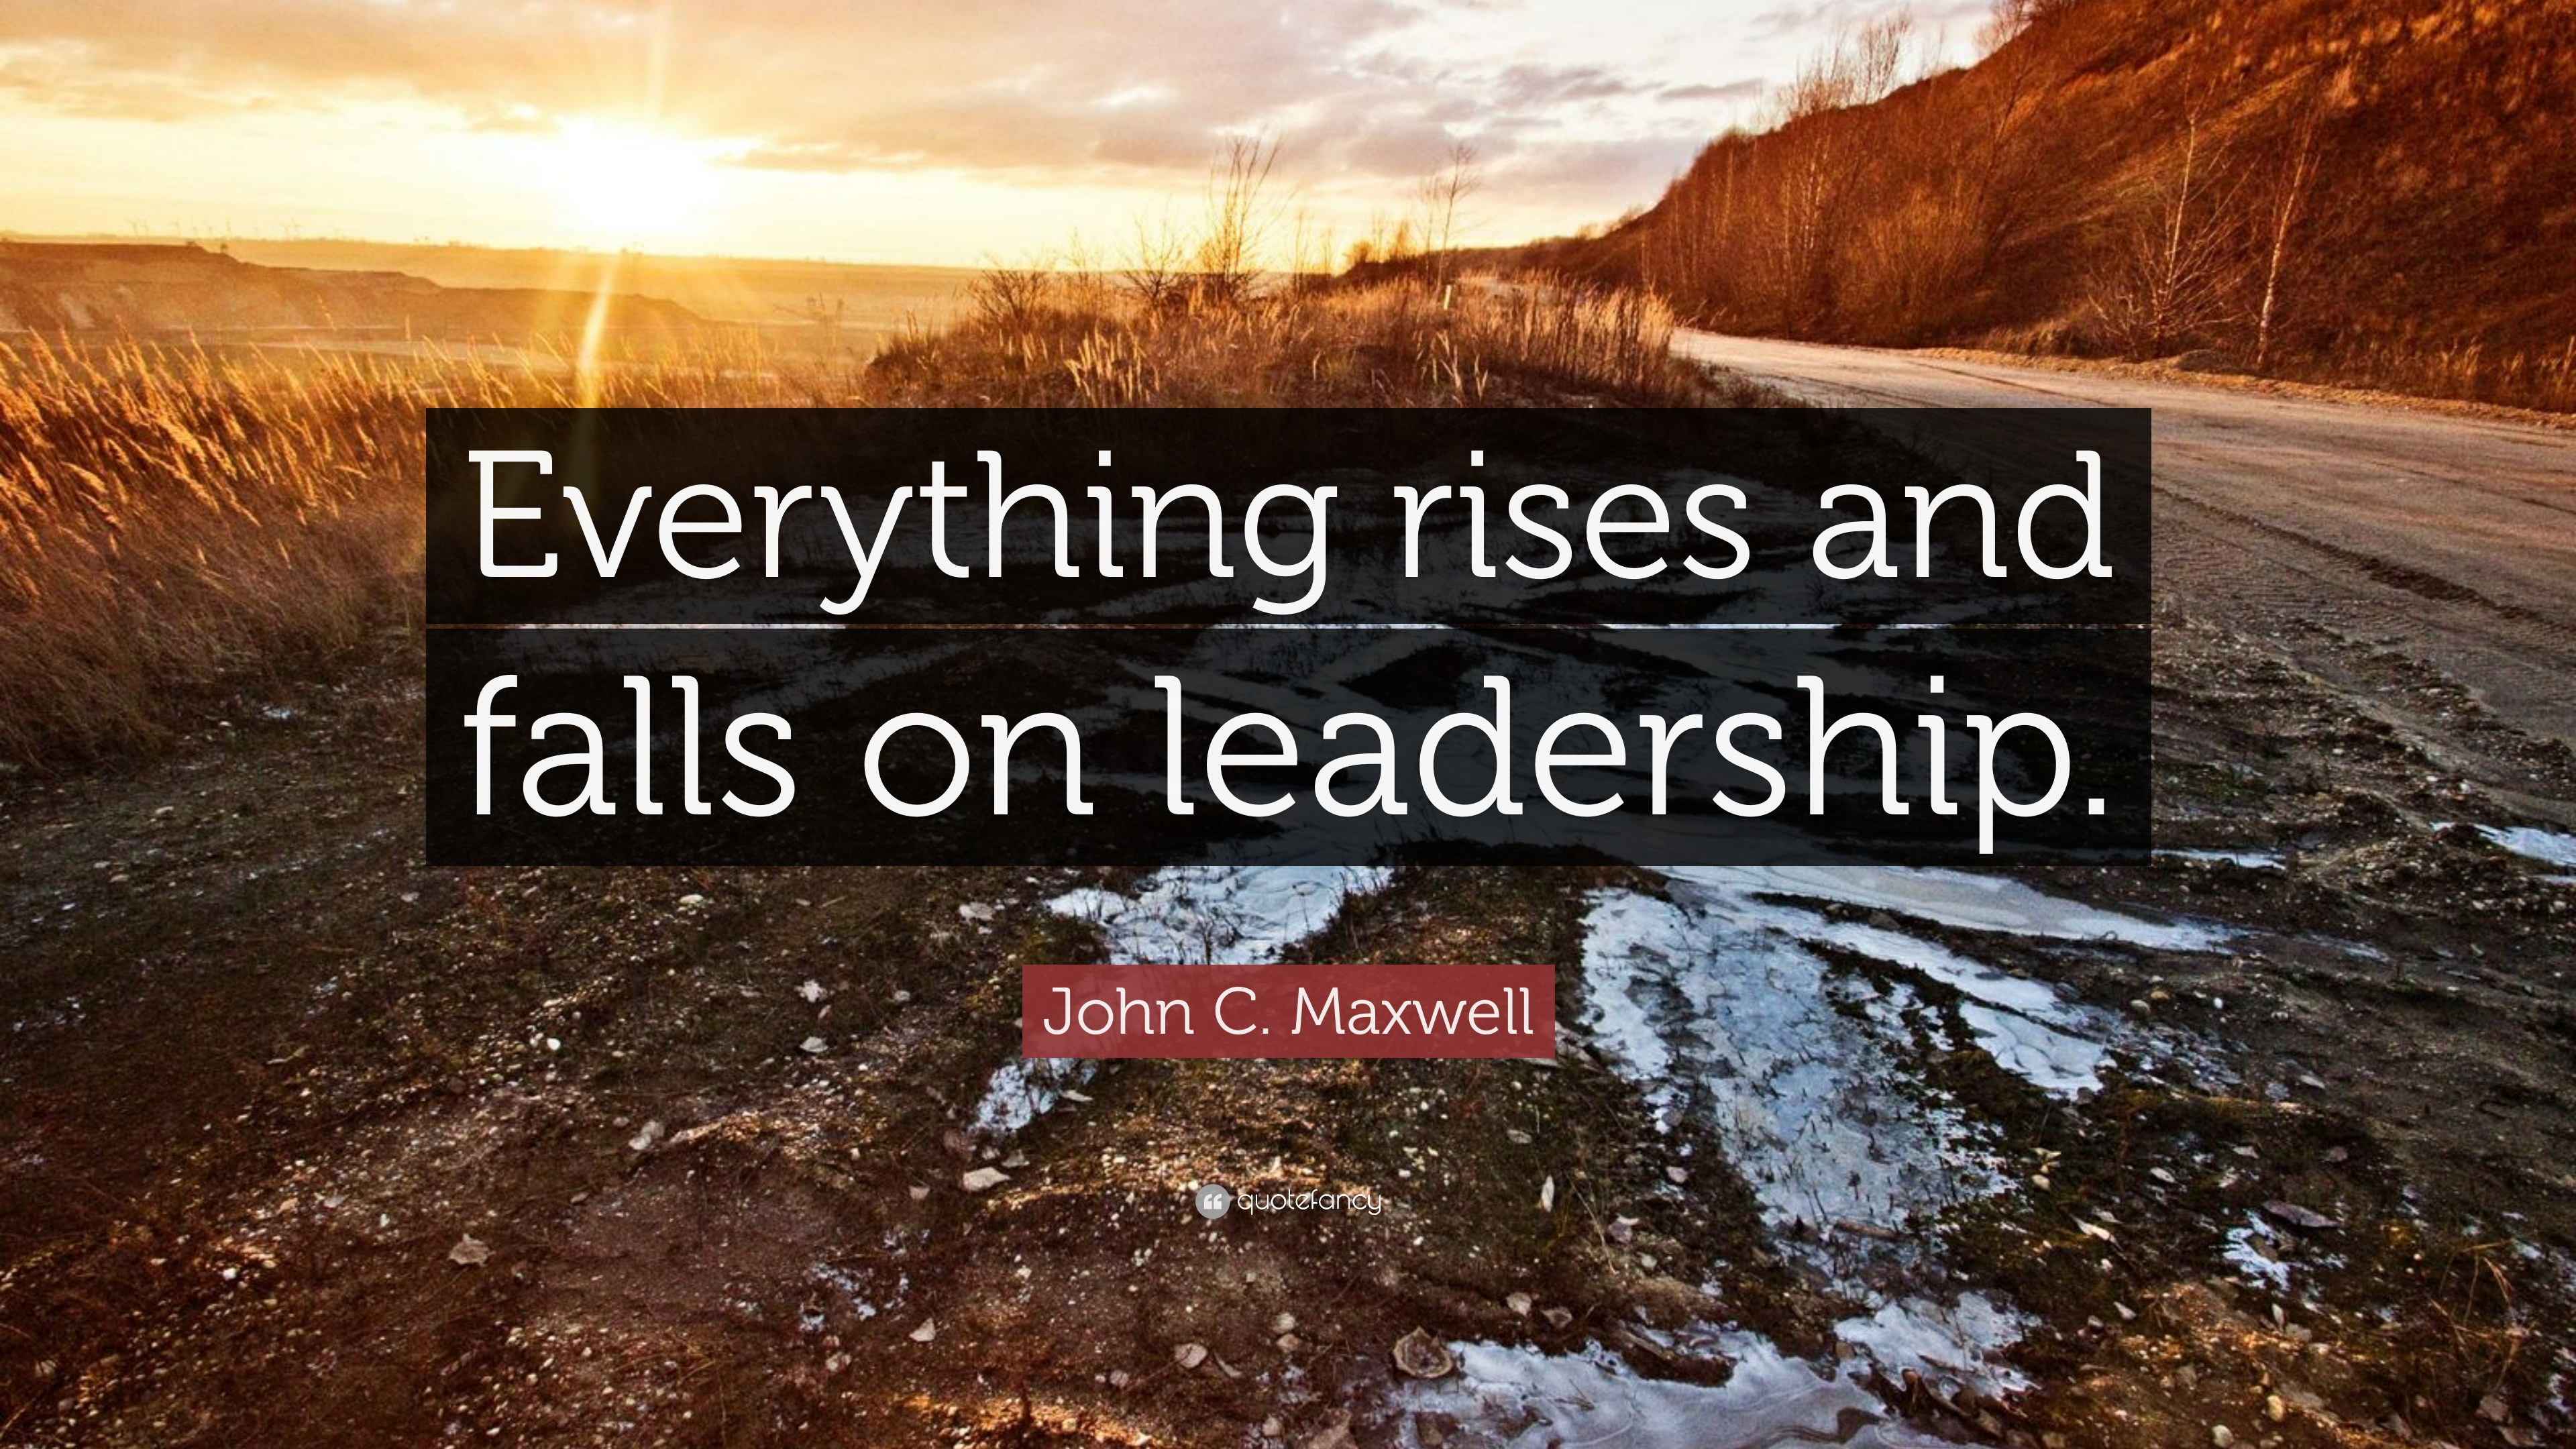 john c  maxwell quote   u201ceverything rises and falls on